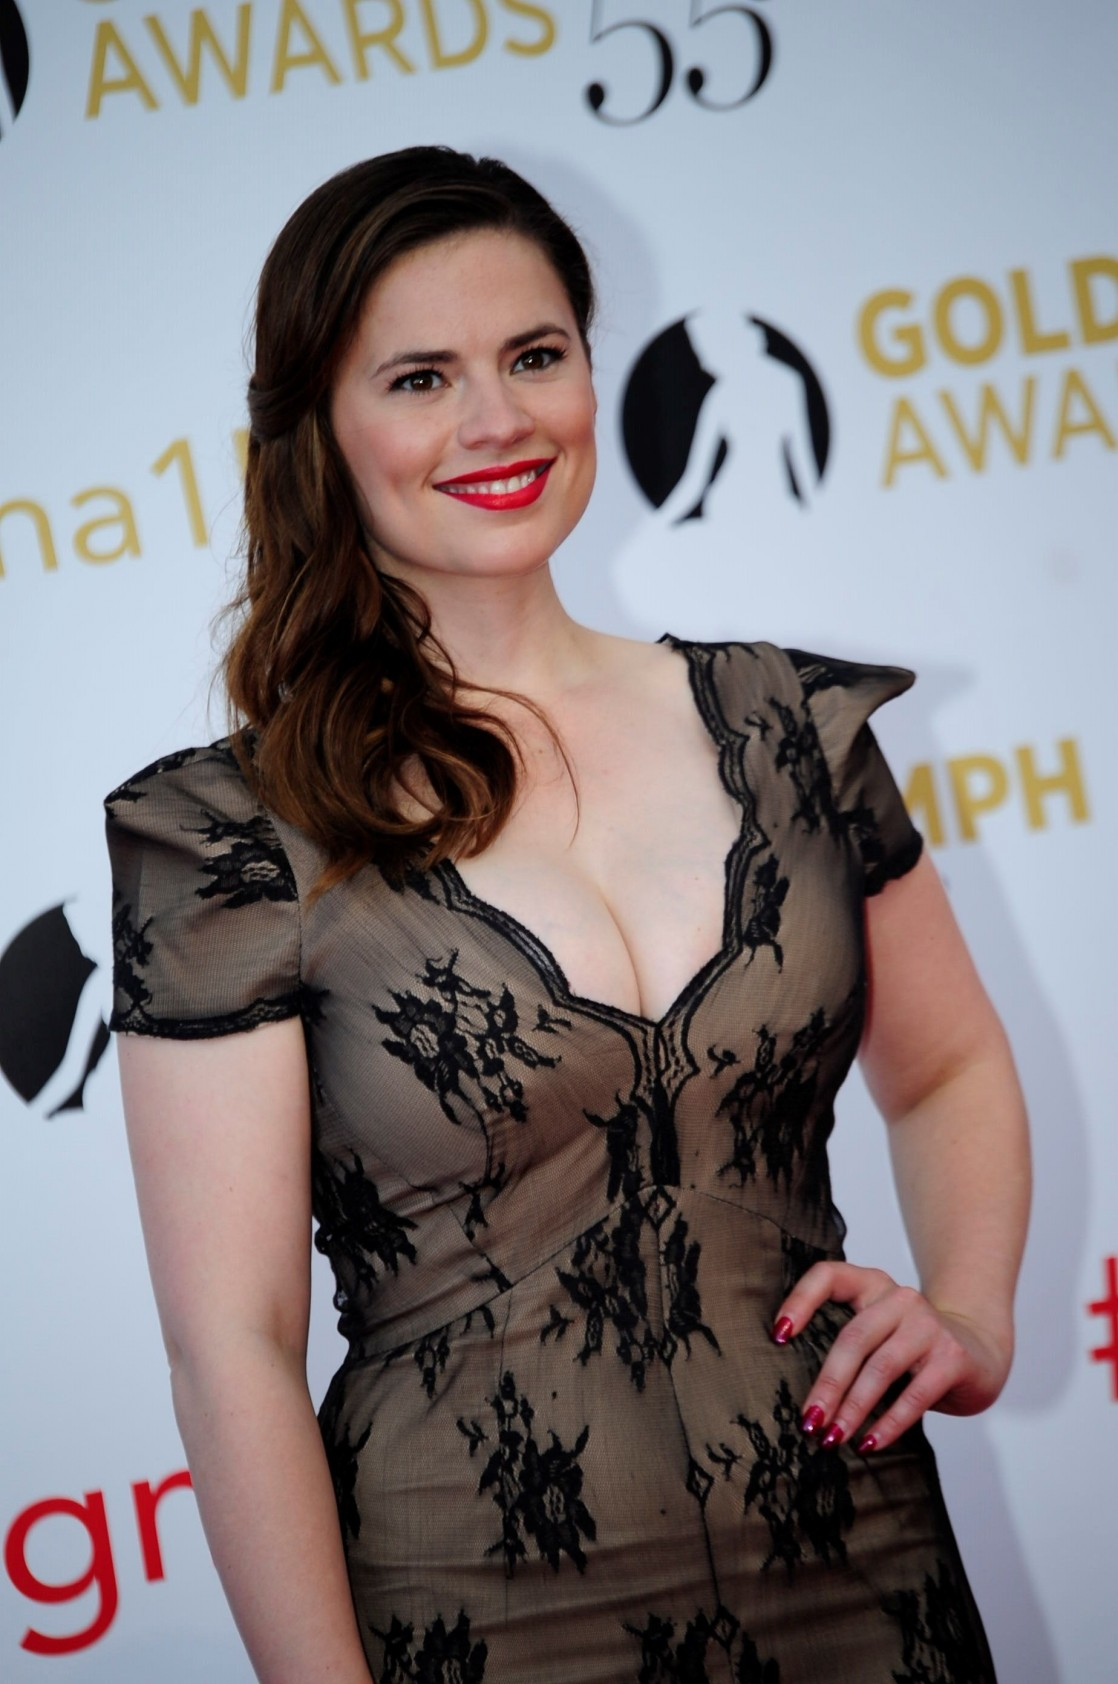 Hayley Atwell Hot Images, Sexy Pics & Videos